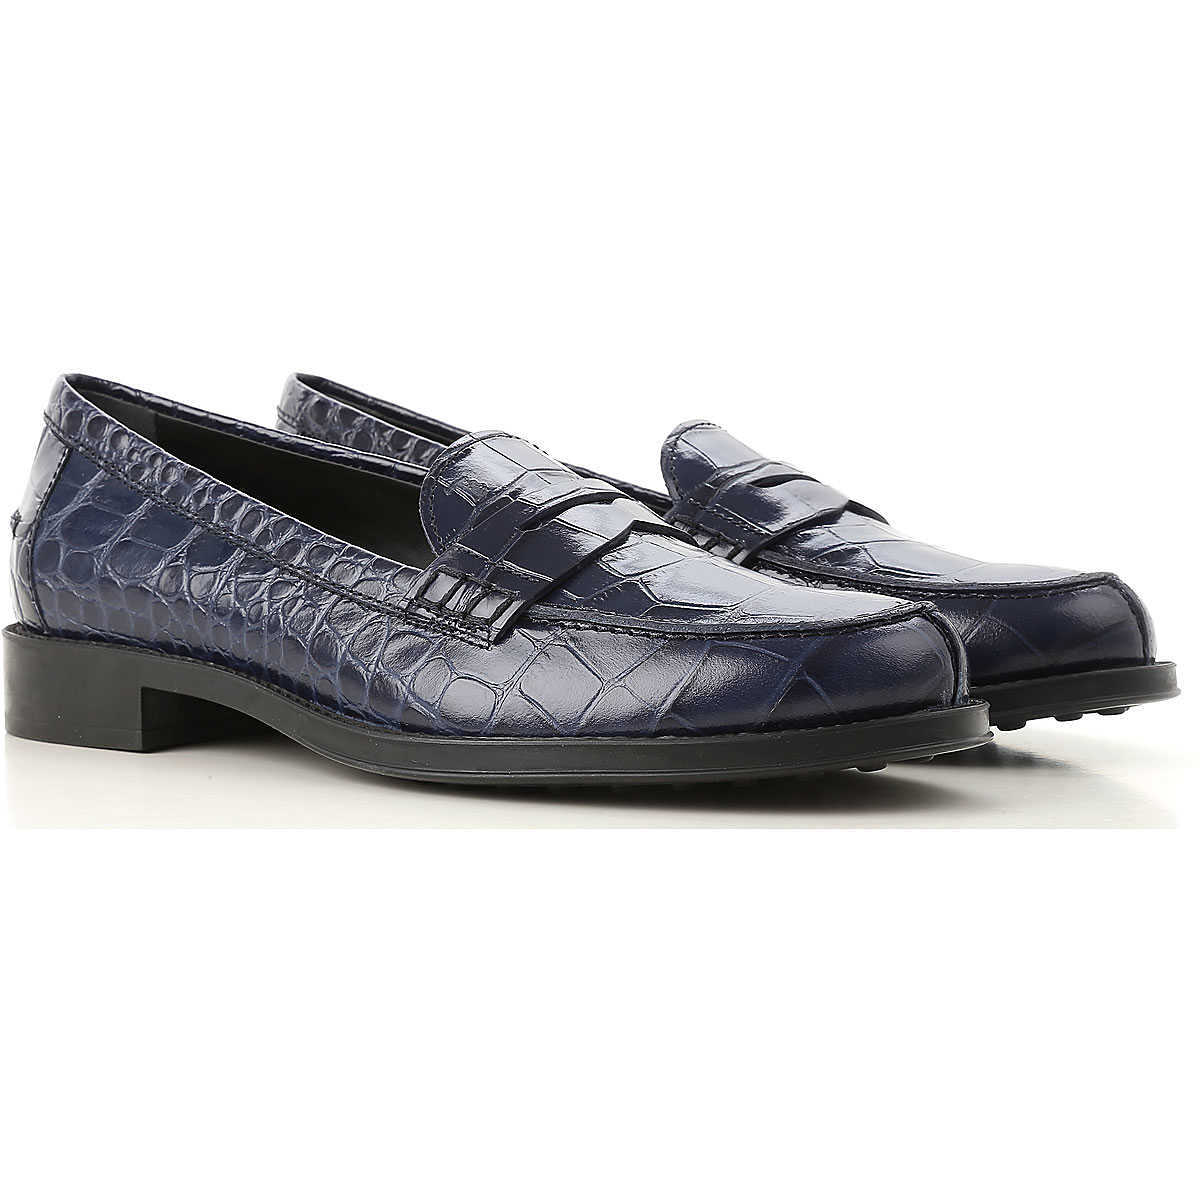 Tods Loafers for Women On Sale Blue DK - GOOFASH - Womens FLAT SHOES